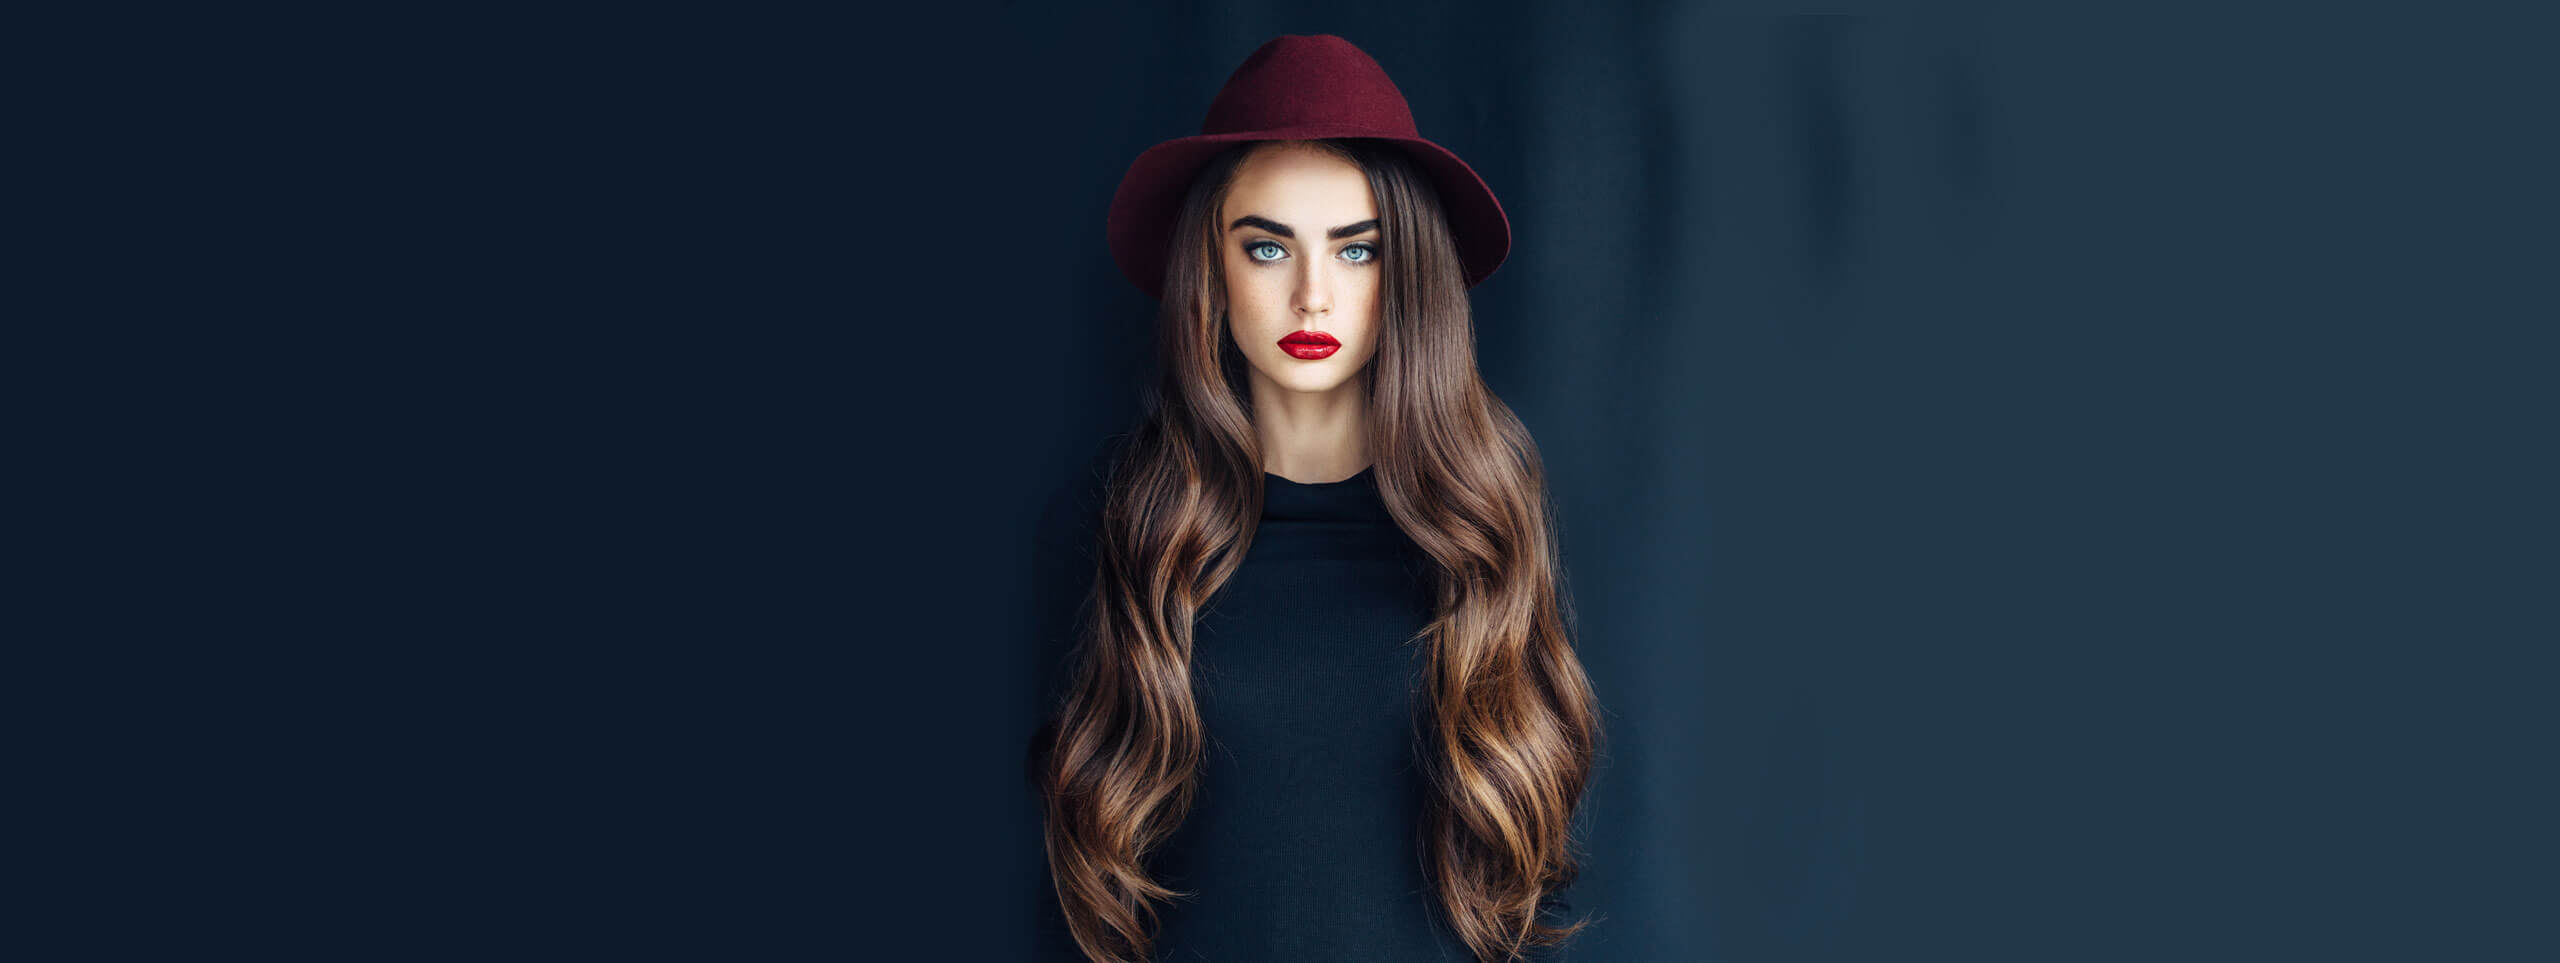 trendyhaircolorbrown